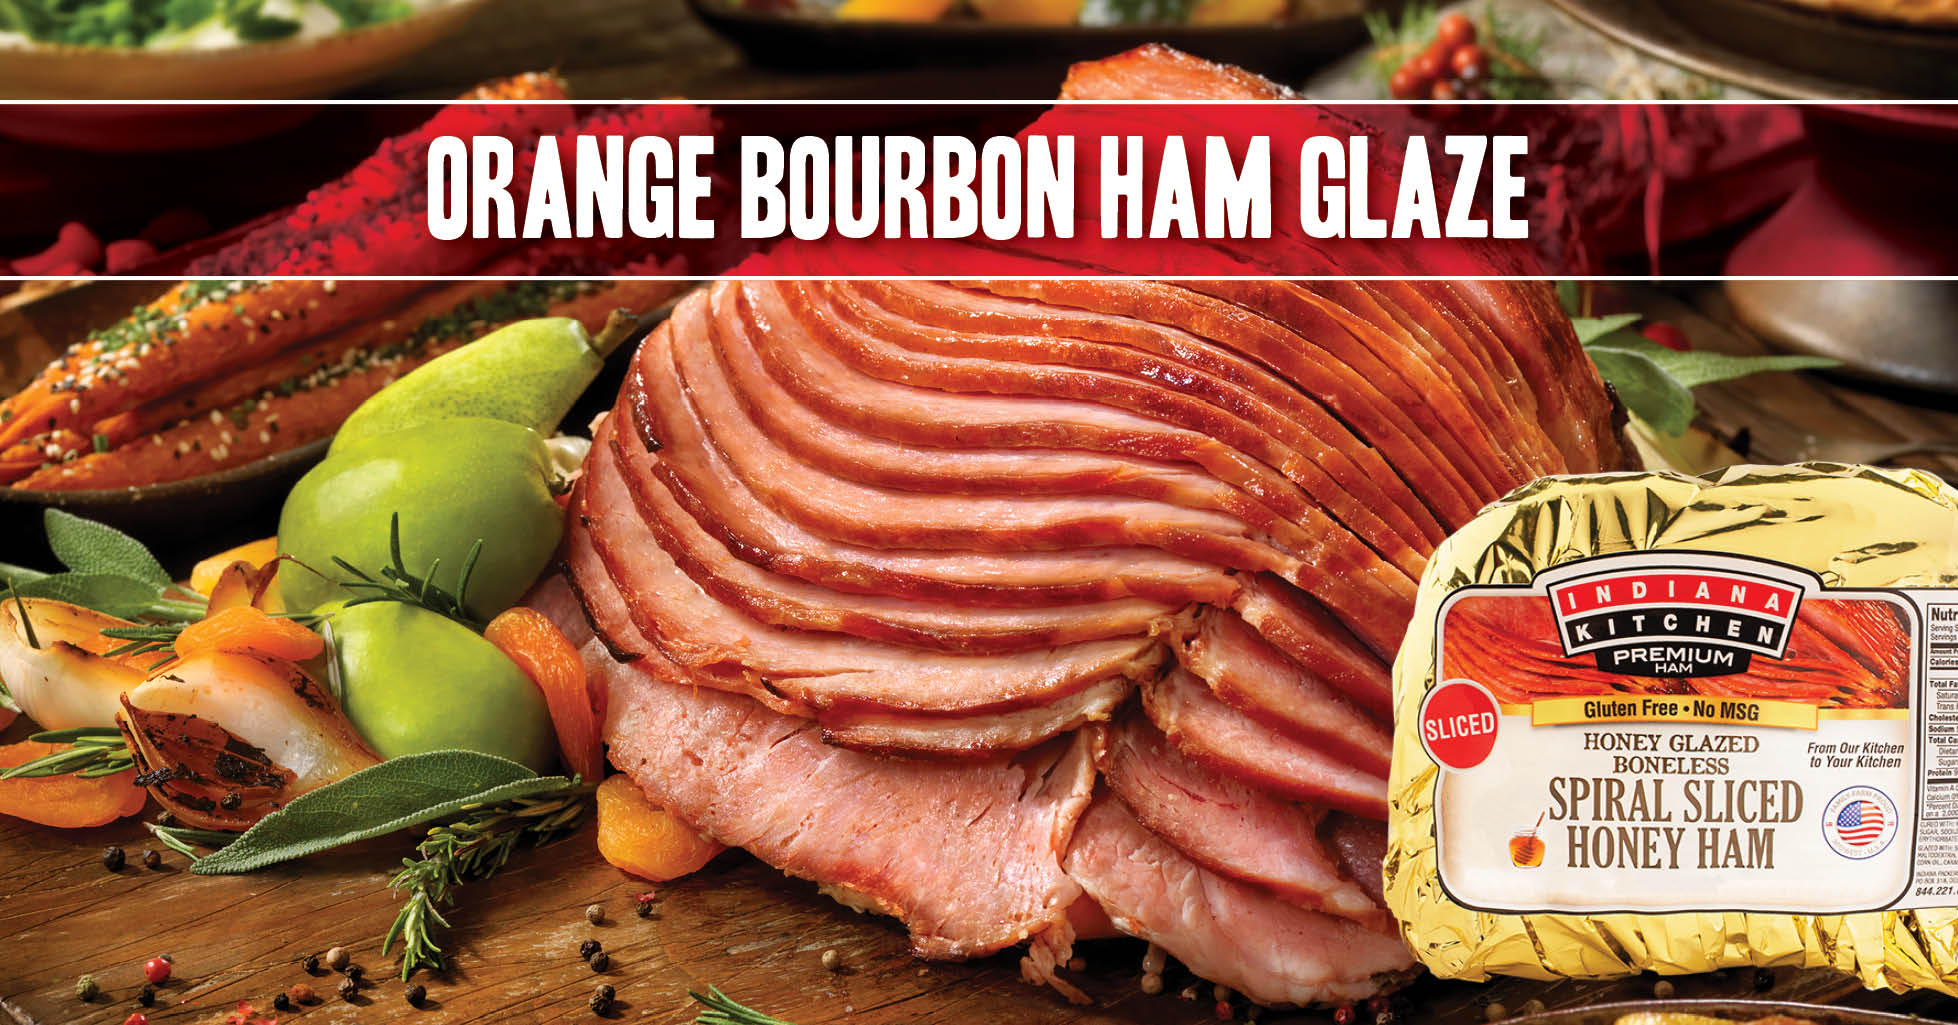 Try this recipe for an orange bourbon glaze with a touch of mustard on your next Indiana Kitchen ham